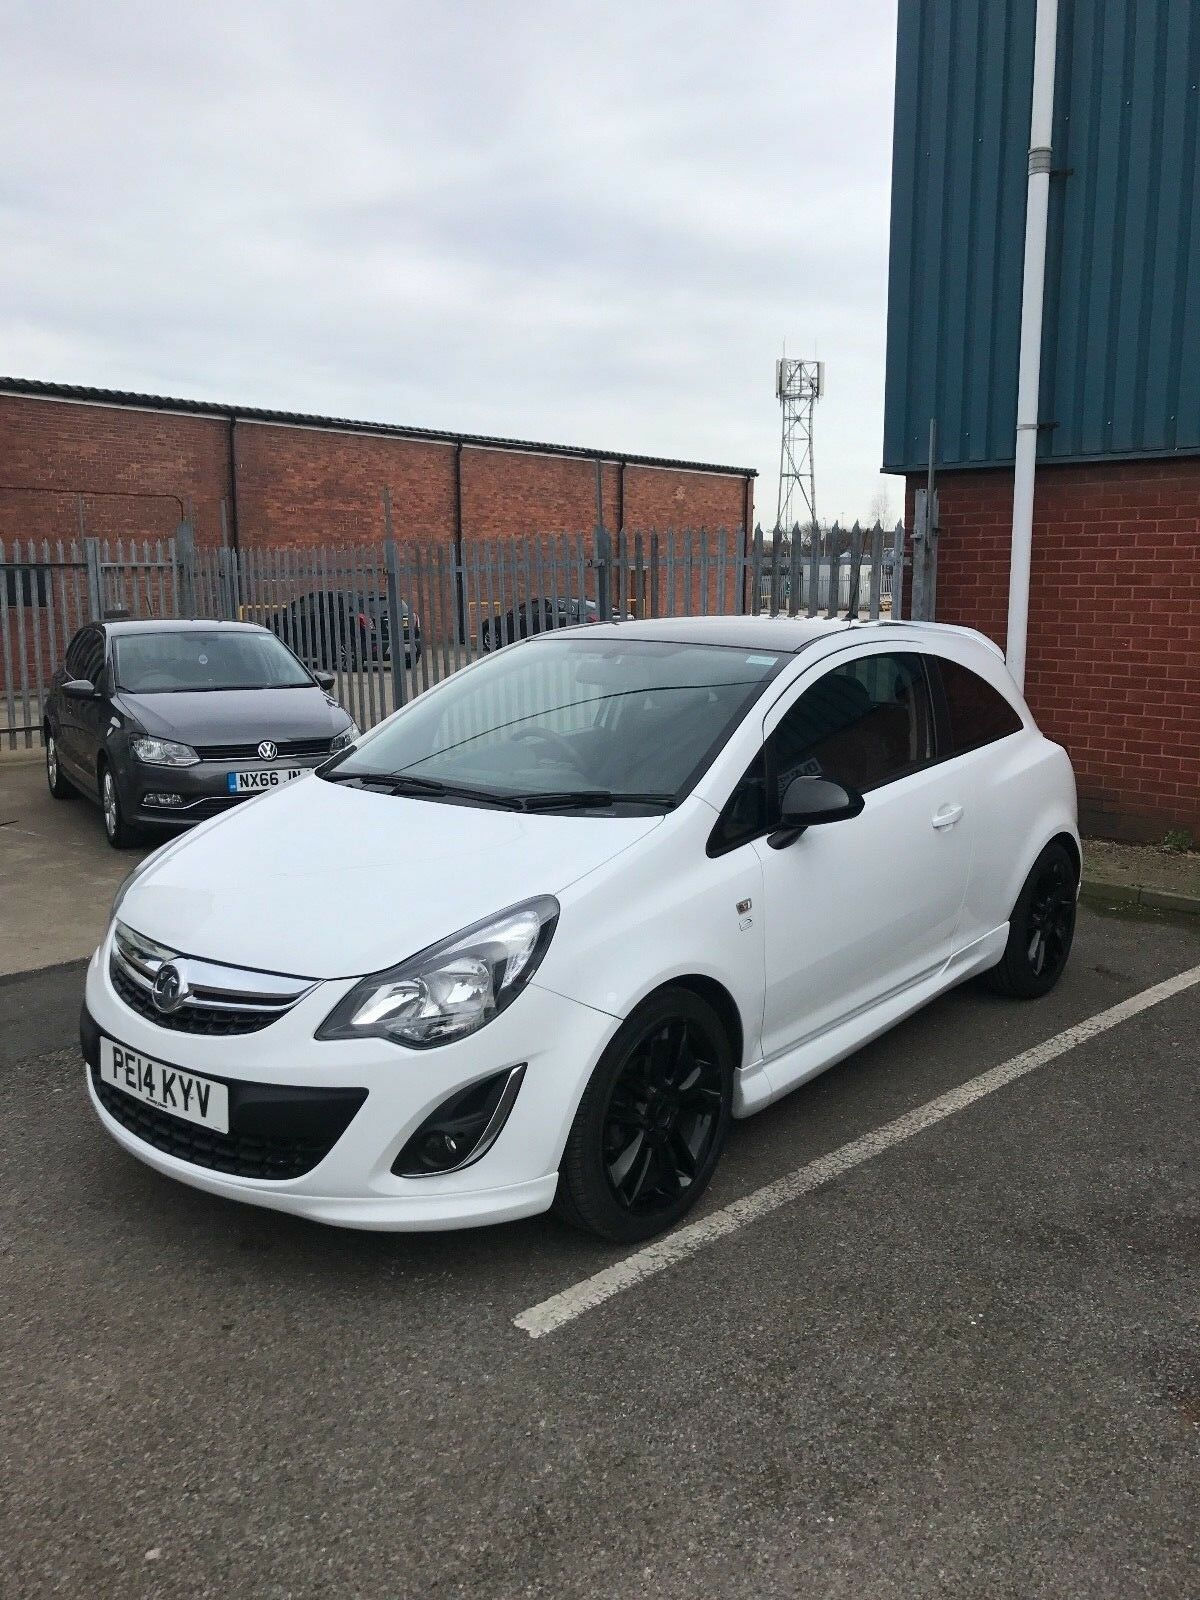 2014 vauxhall corsa 1 2 3dr limited edition 17 alloys petrol white manual 4 picclick uk. Black Bedroom Furniture Sets. Home Design Ideas